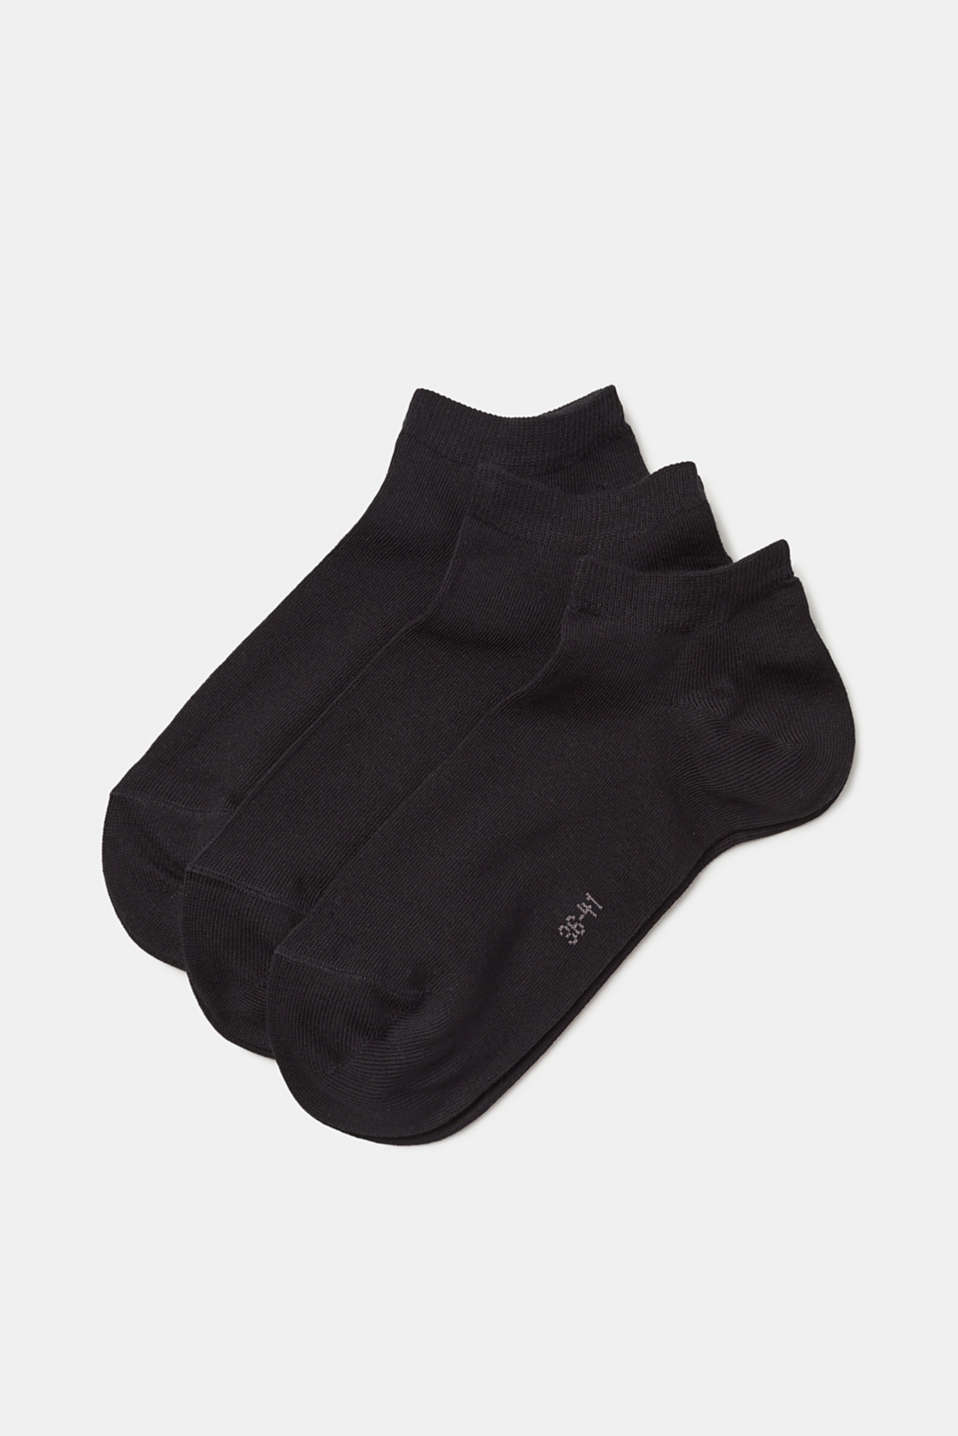 Esprit - 3 pairs of trainer socks